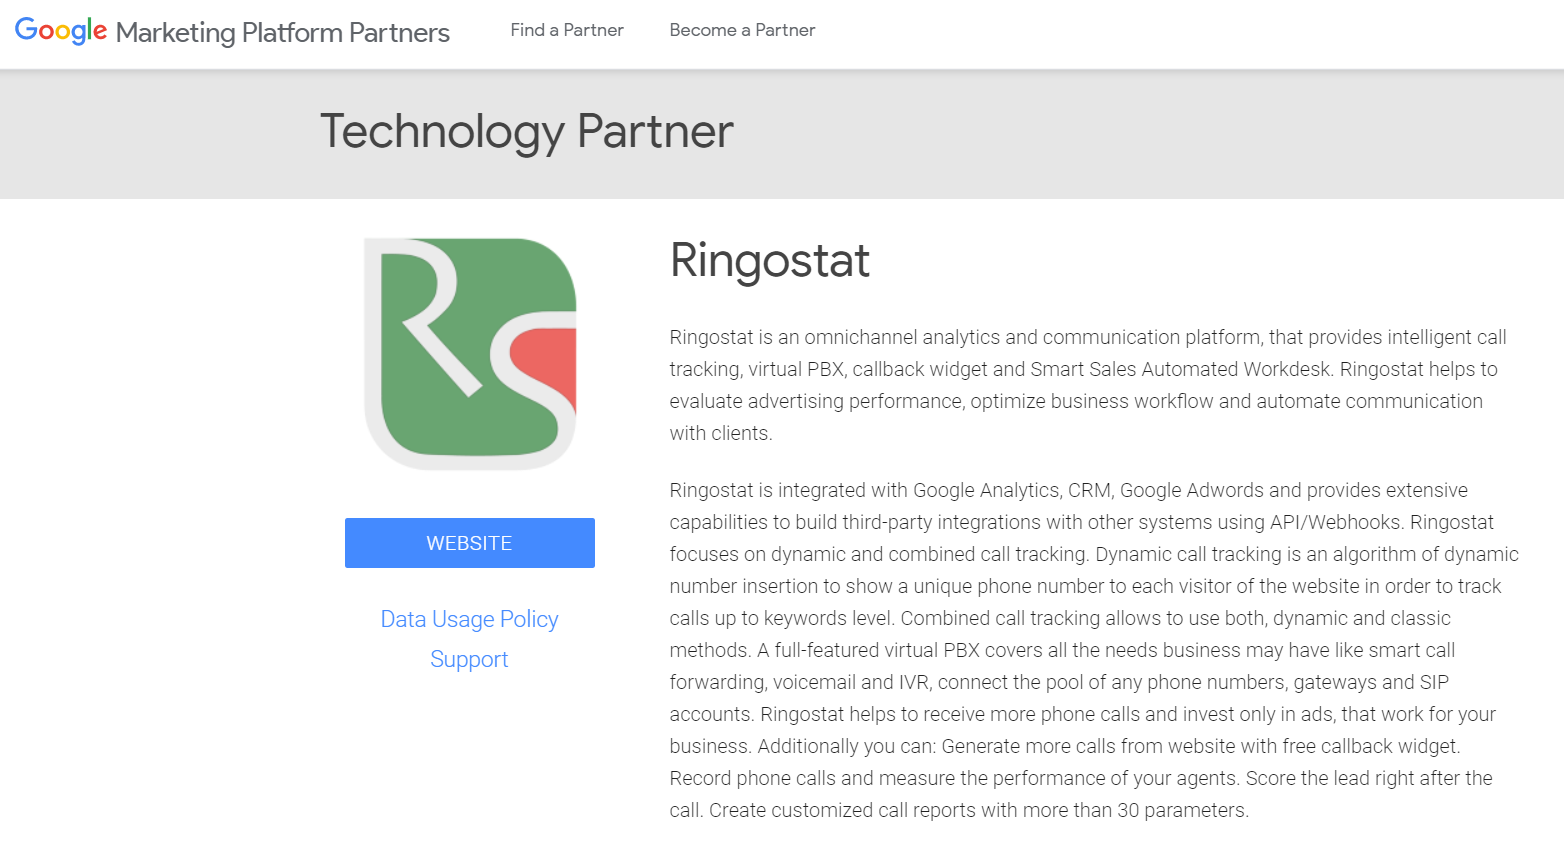 Ringostat is an official technology partner of Google Analytics